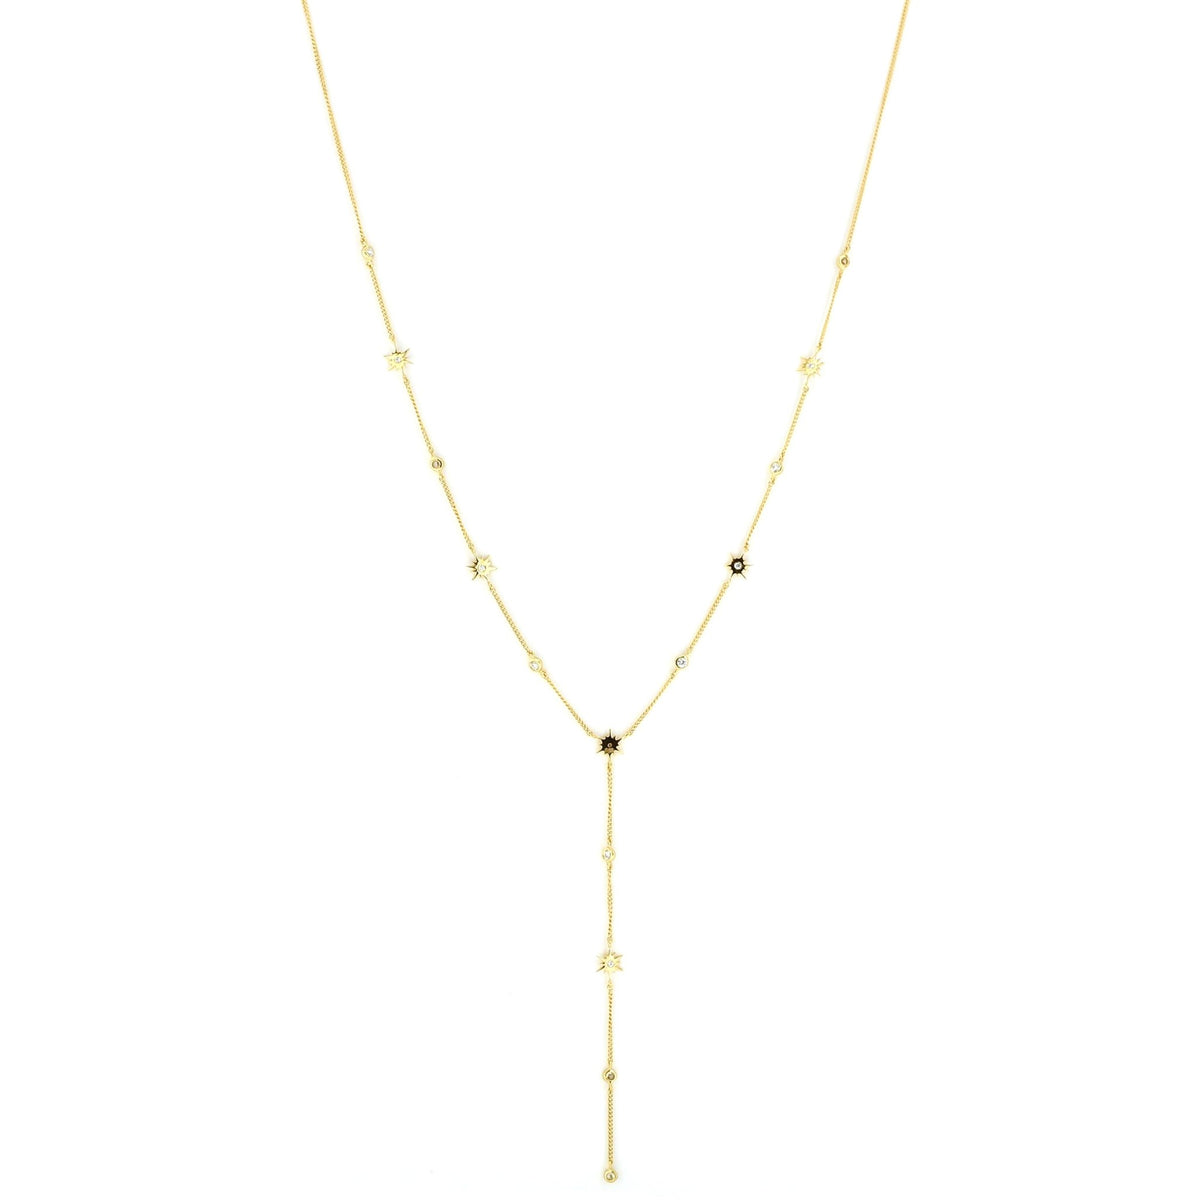 TINY BELIEVE Y NECKLACE - CUBIC ZIRCONIA & GOLD - SO PRETTY CARA COTTER